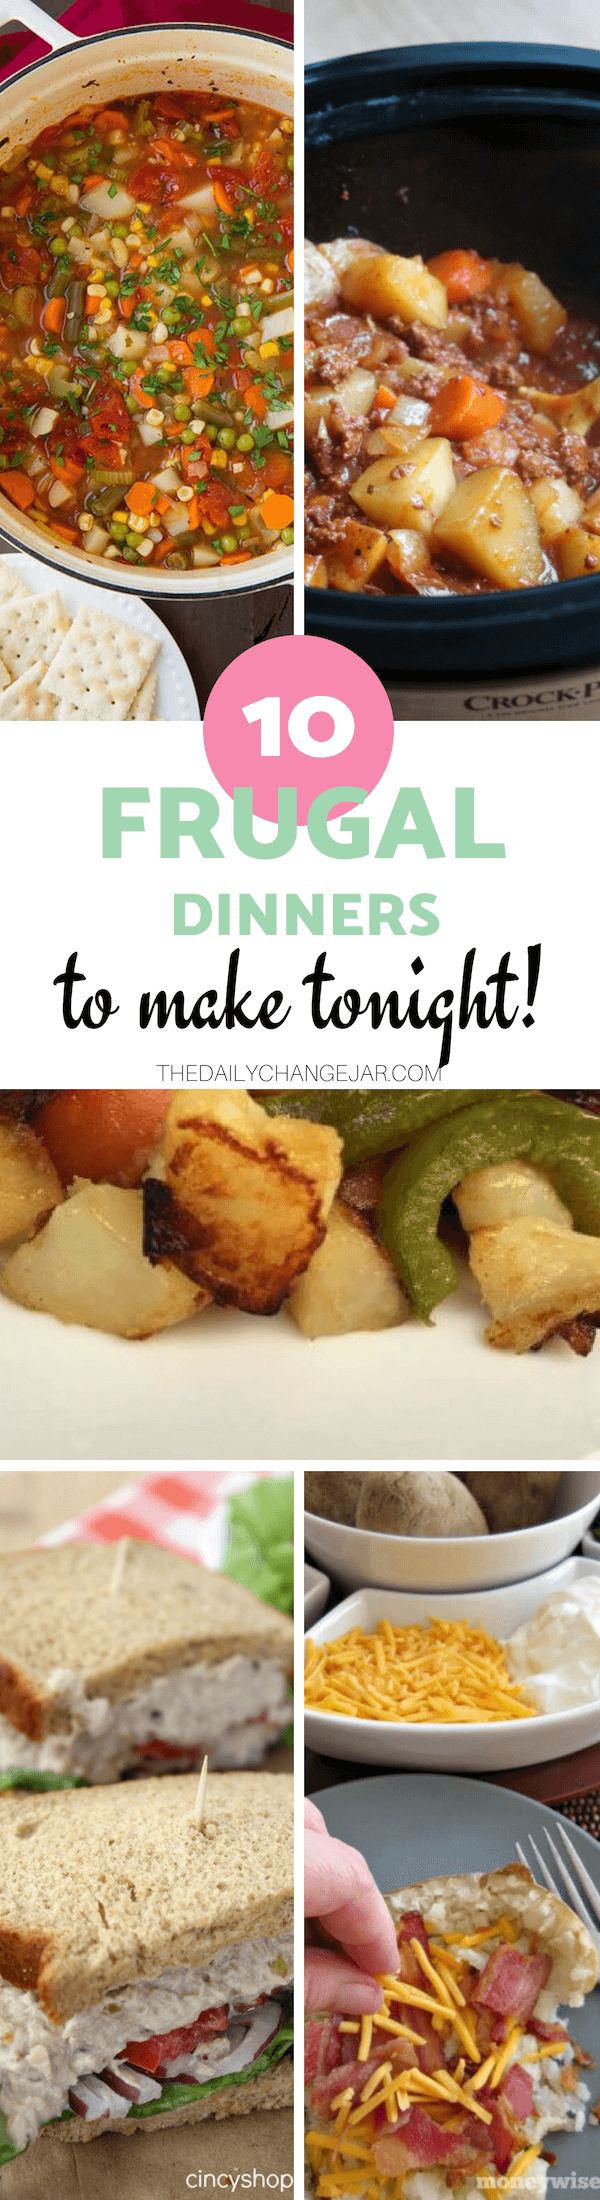 10 frugal dinners to make tonight. Food makes up a lot of our budgets. But what do you do when money is really tight? Here are 10 frugal meals to make when you're broke. #frugalmeals #frugalmealshealthy #frugalmealsforfour #frugalmealsfortwo #frugalmealsforlargefamilies #frugalmealsandsnacks #frugaldinners #frugaldinnersfamilies #frugaldinnerssavingmoney #frugaldinnersfor4 #frugaldinnersrecipes #frugaldinnersvegan